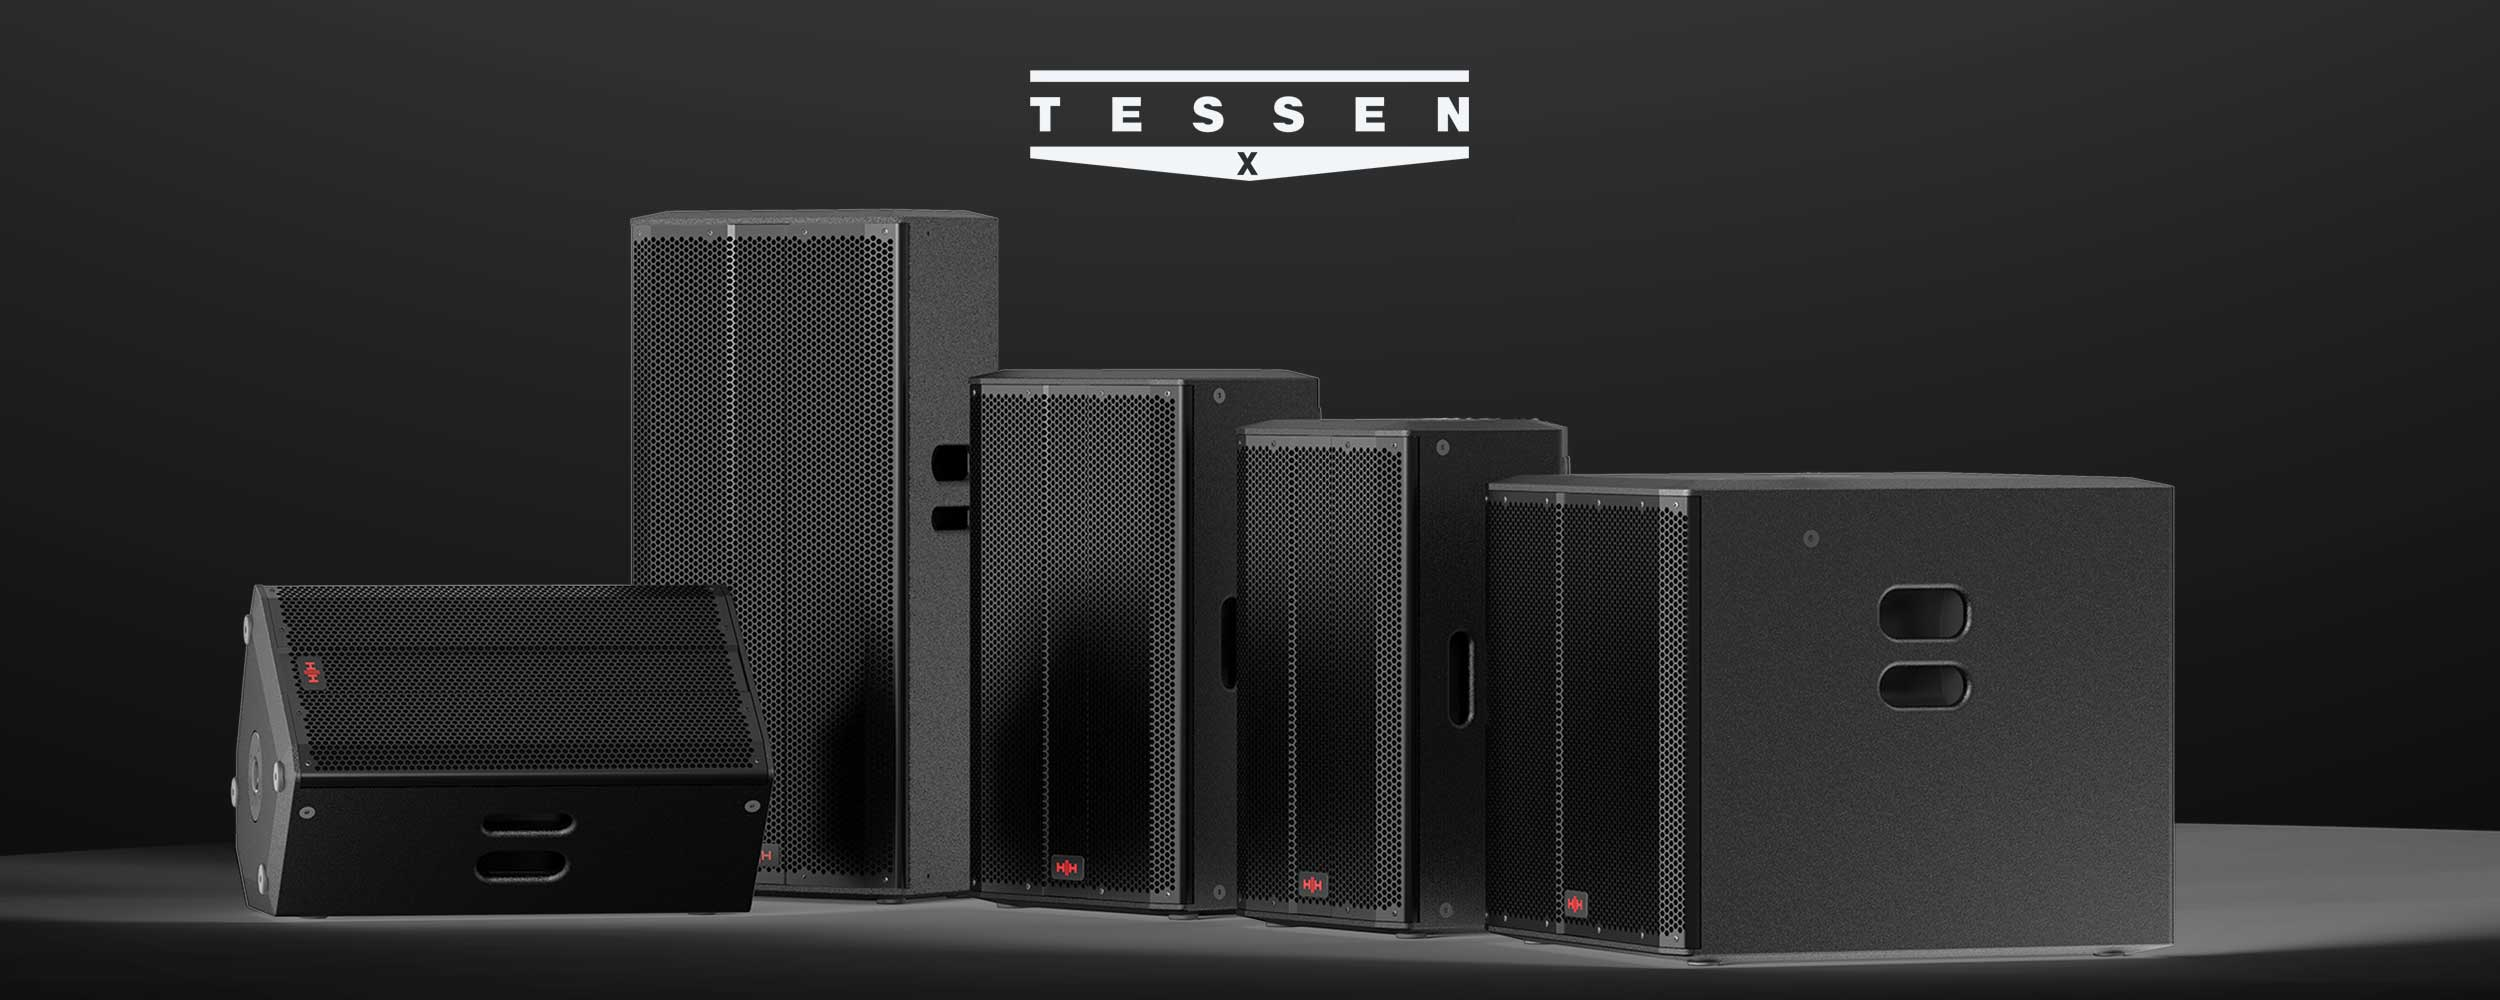 TESSEN-X ACTIVE Speaker Systems